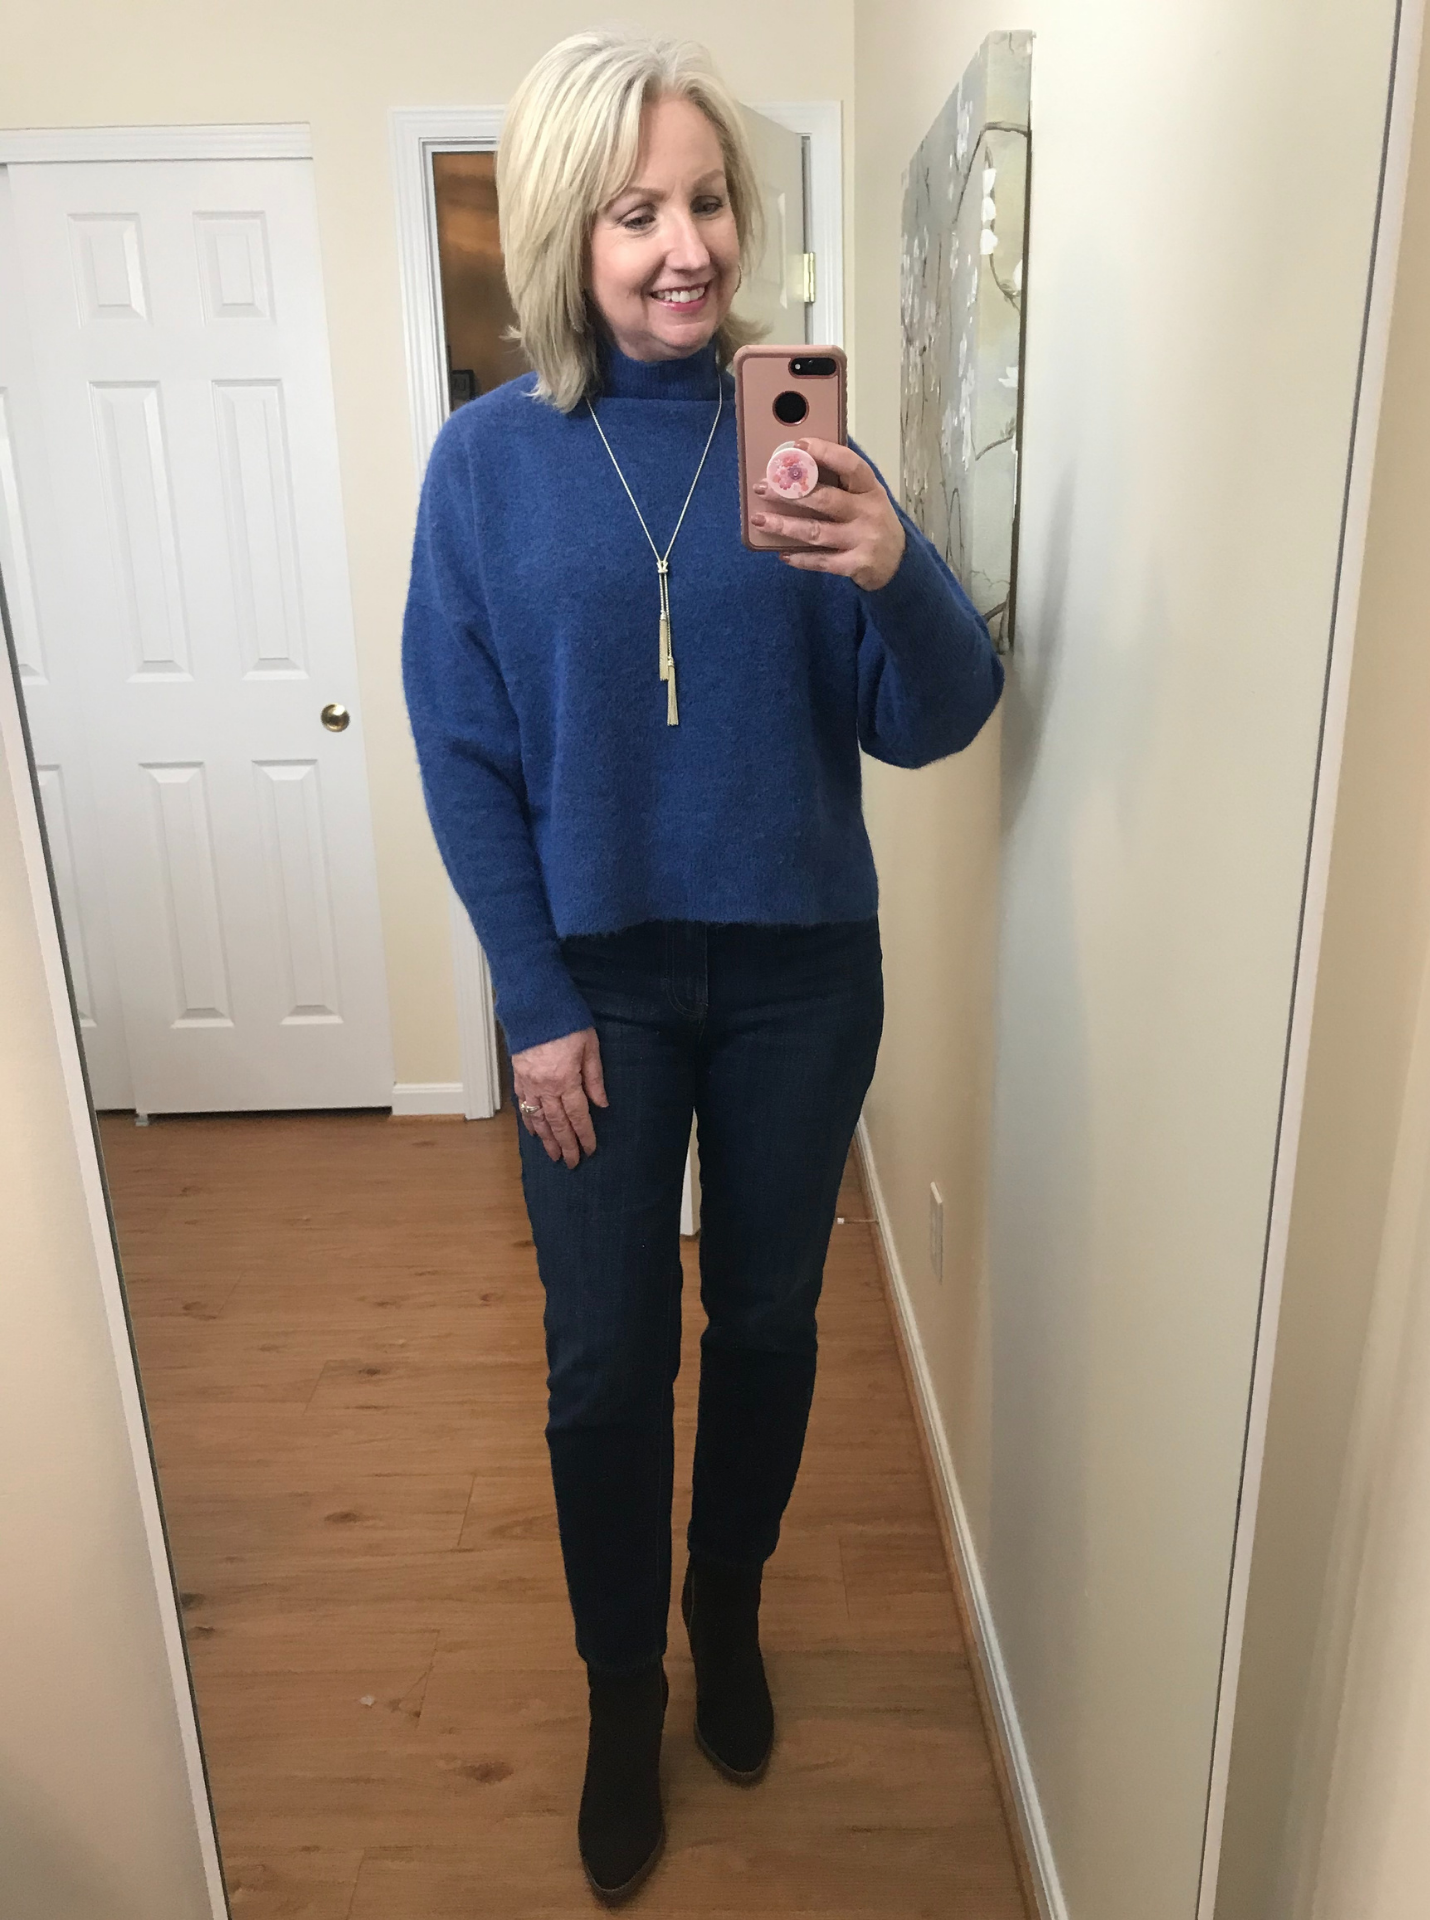 Ankle Jeans Cropped Blue Sweater No Tuck Brown Suede Boots